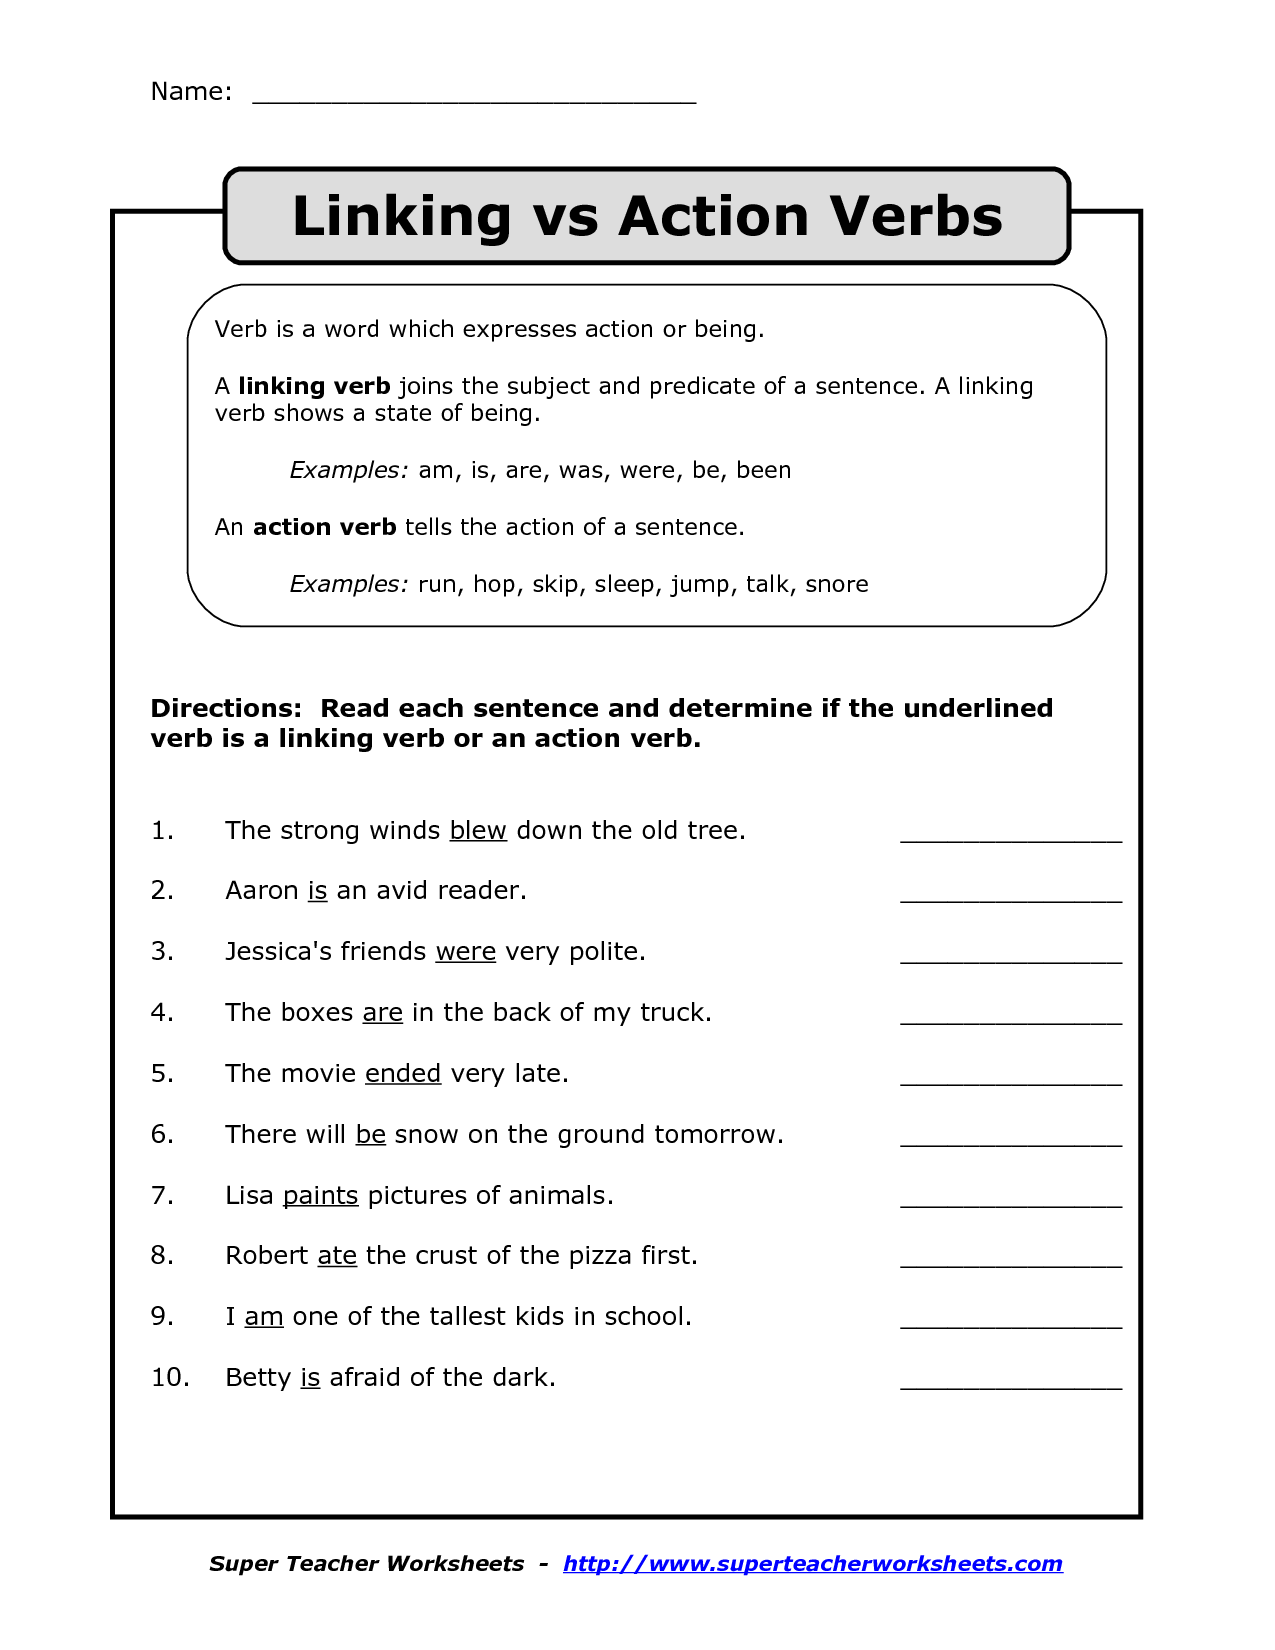 20 Best Images Of Action Vs Linking Verbs Worksheets